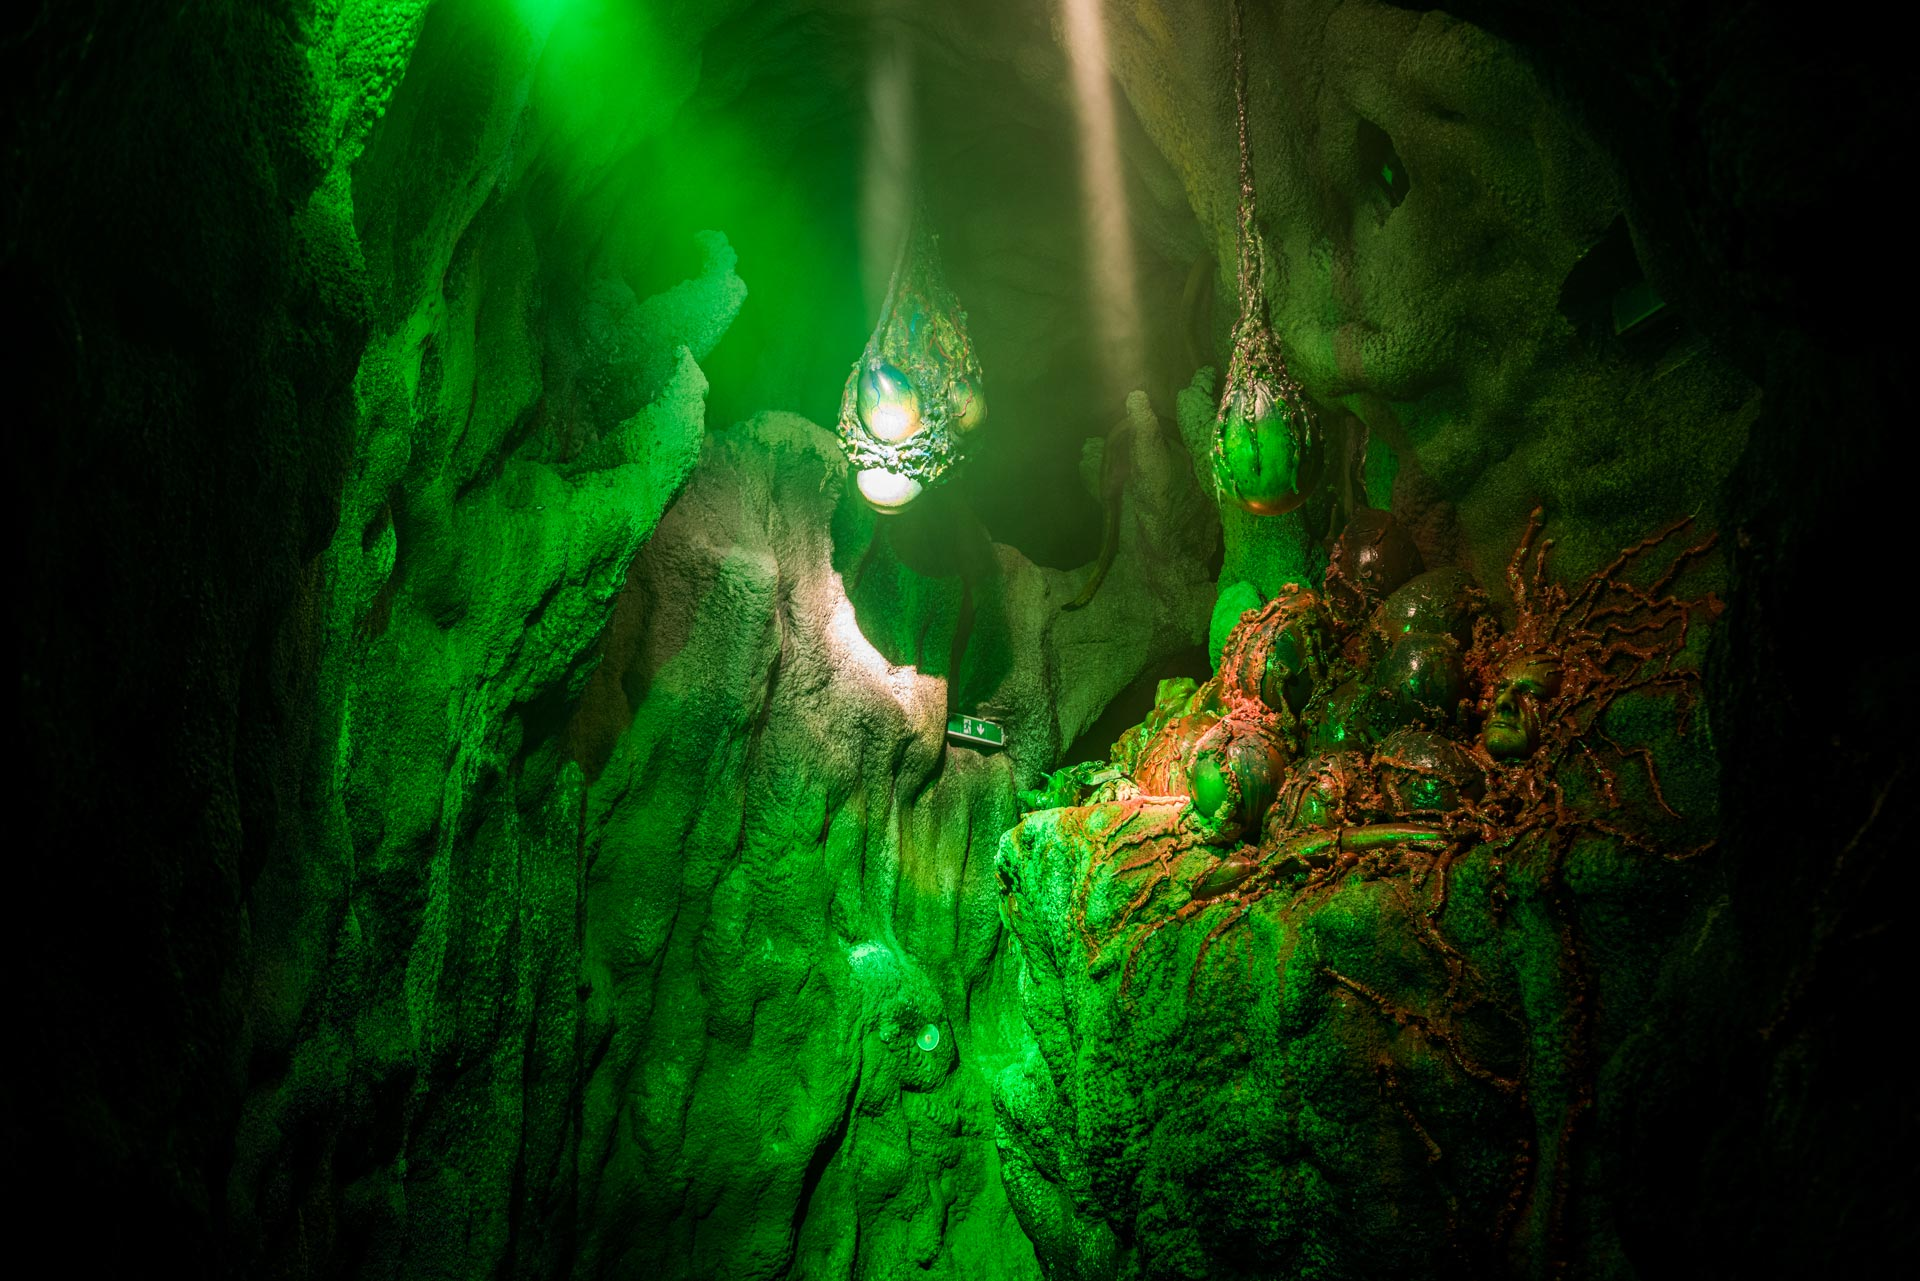 Green wall of Ghoul Haunted House at Traumatica Europa-Park